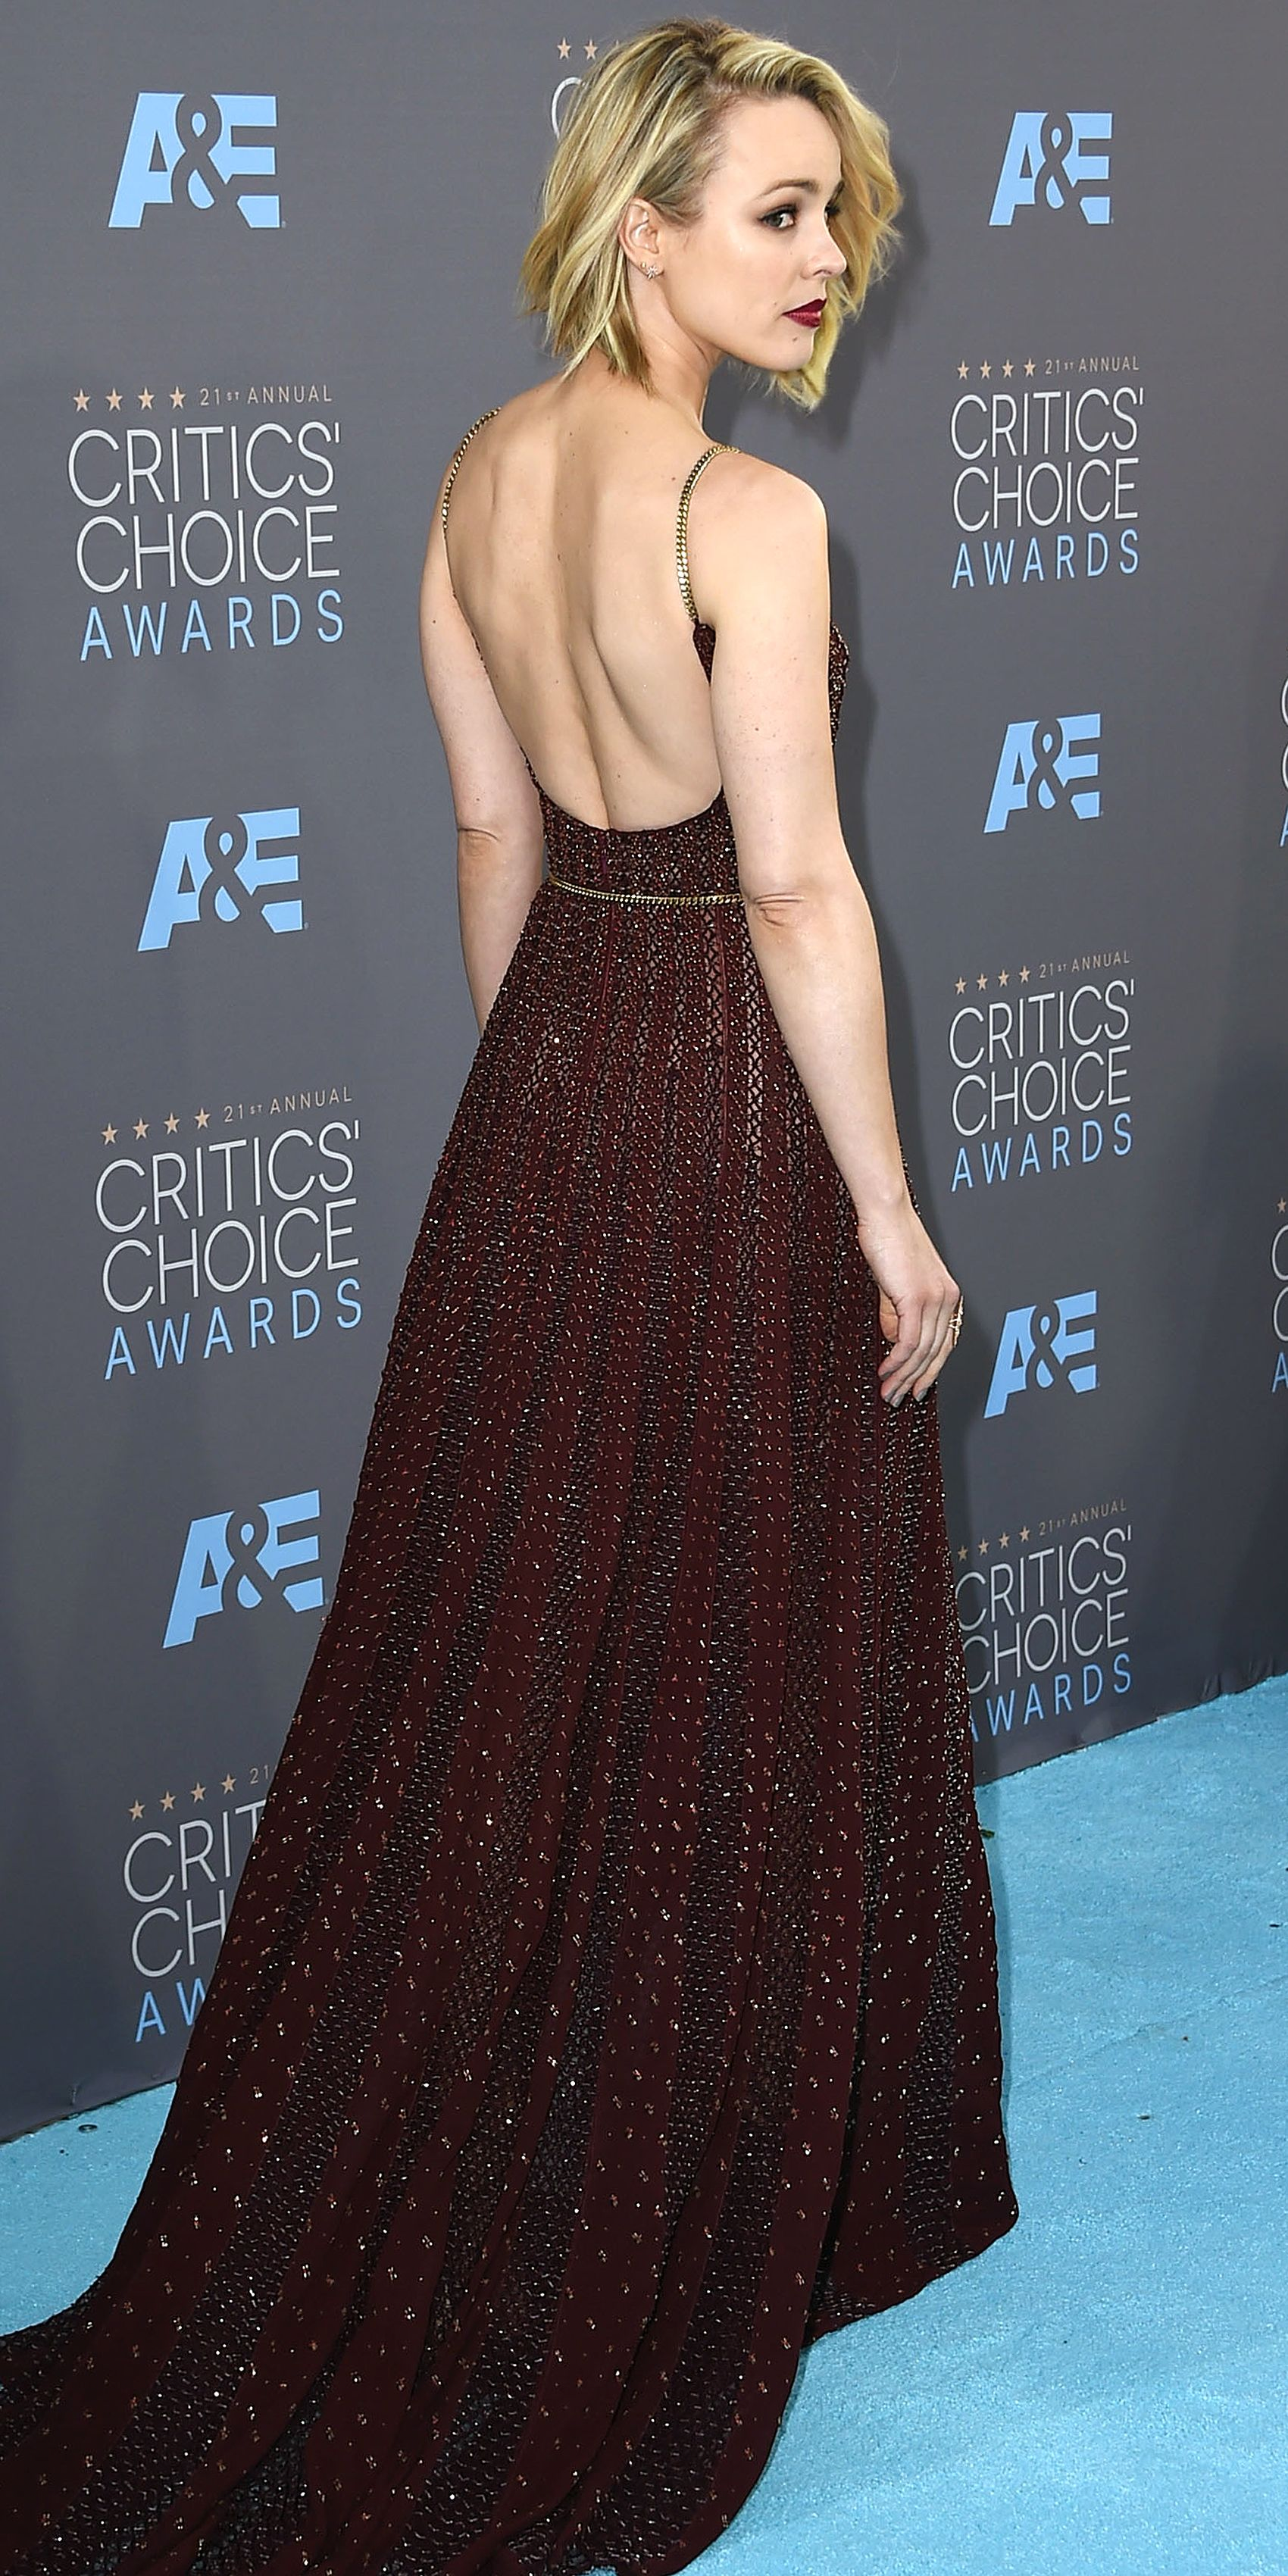 RACHEL MCADAMS wears an Elie Saab gown with delicate golden-chain straps and belt, plus Graziela Gems studs, to the Critics' Choice Awards.